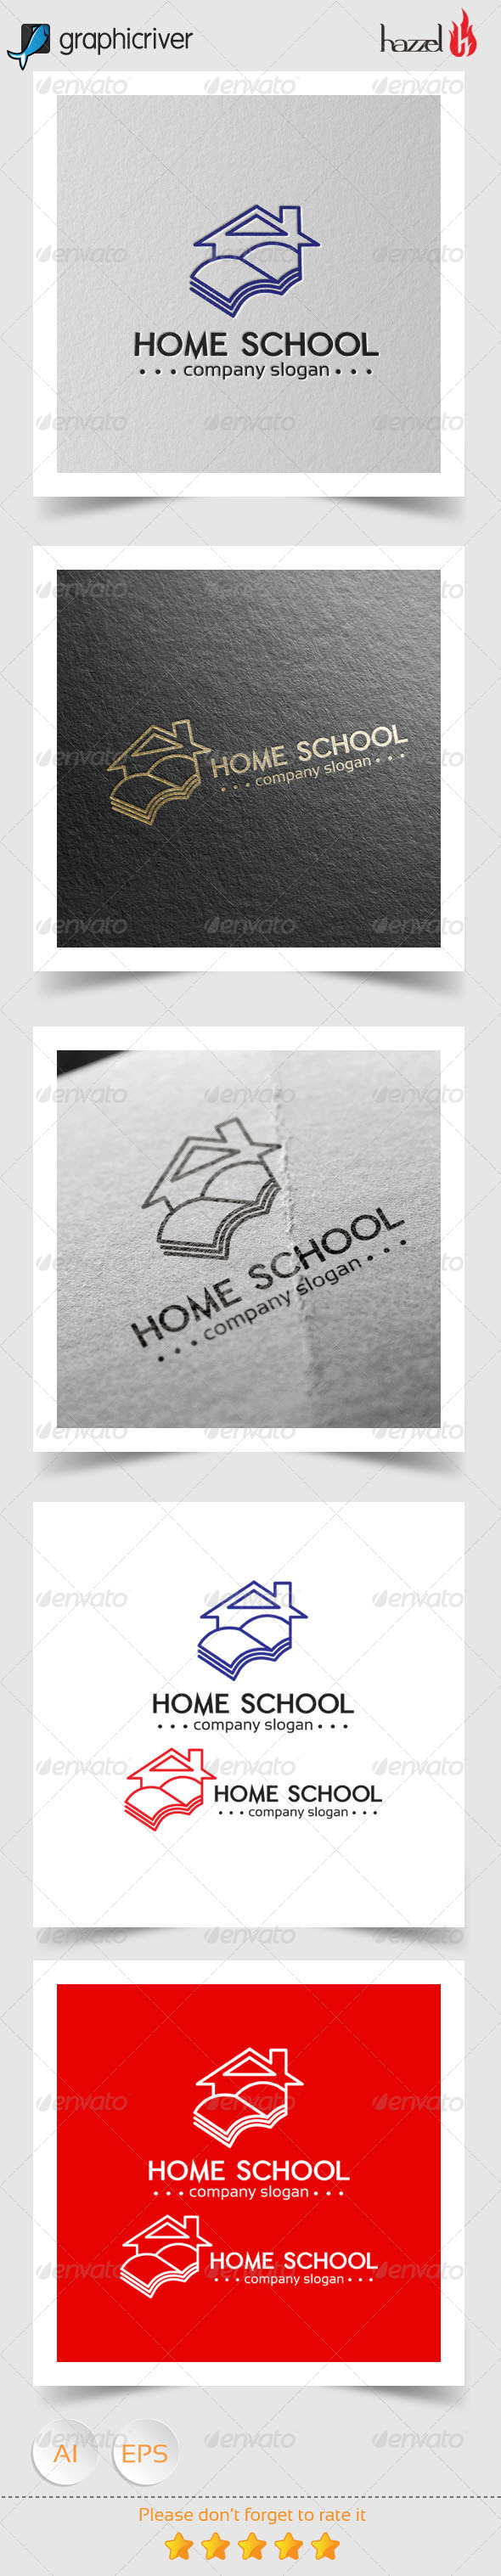 GraphicRiver Home School Logo 8230501